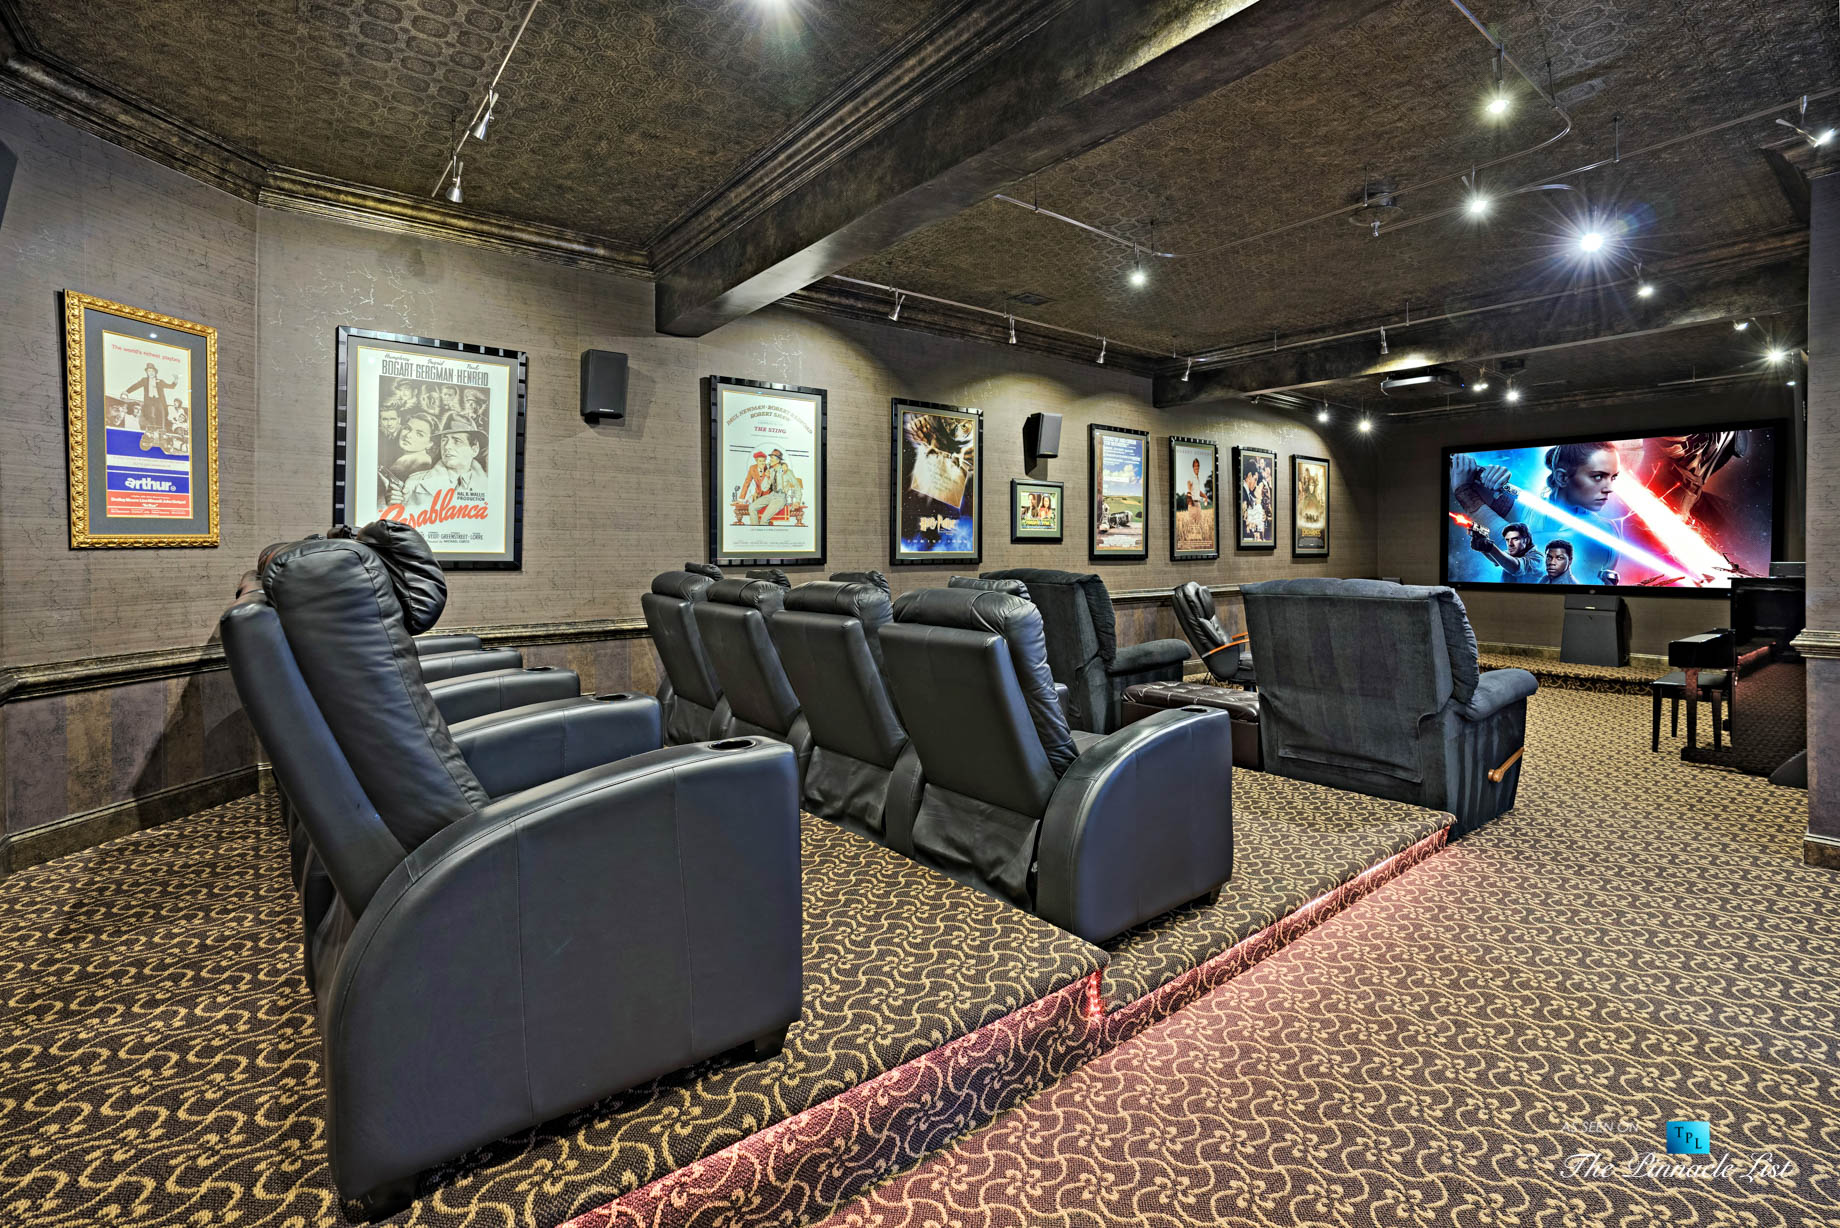 2219 Costley Mill Rd NE, Conyers, GA, USA - Theatre Room - Luxury Real Estate - Equestrian Country Home